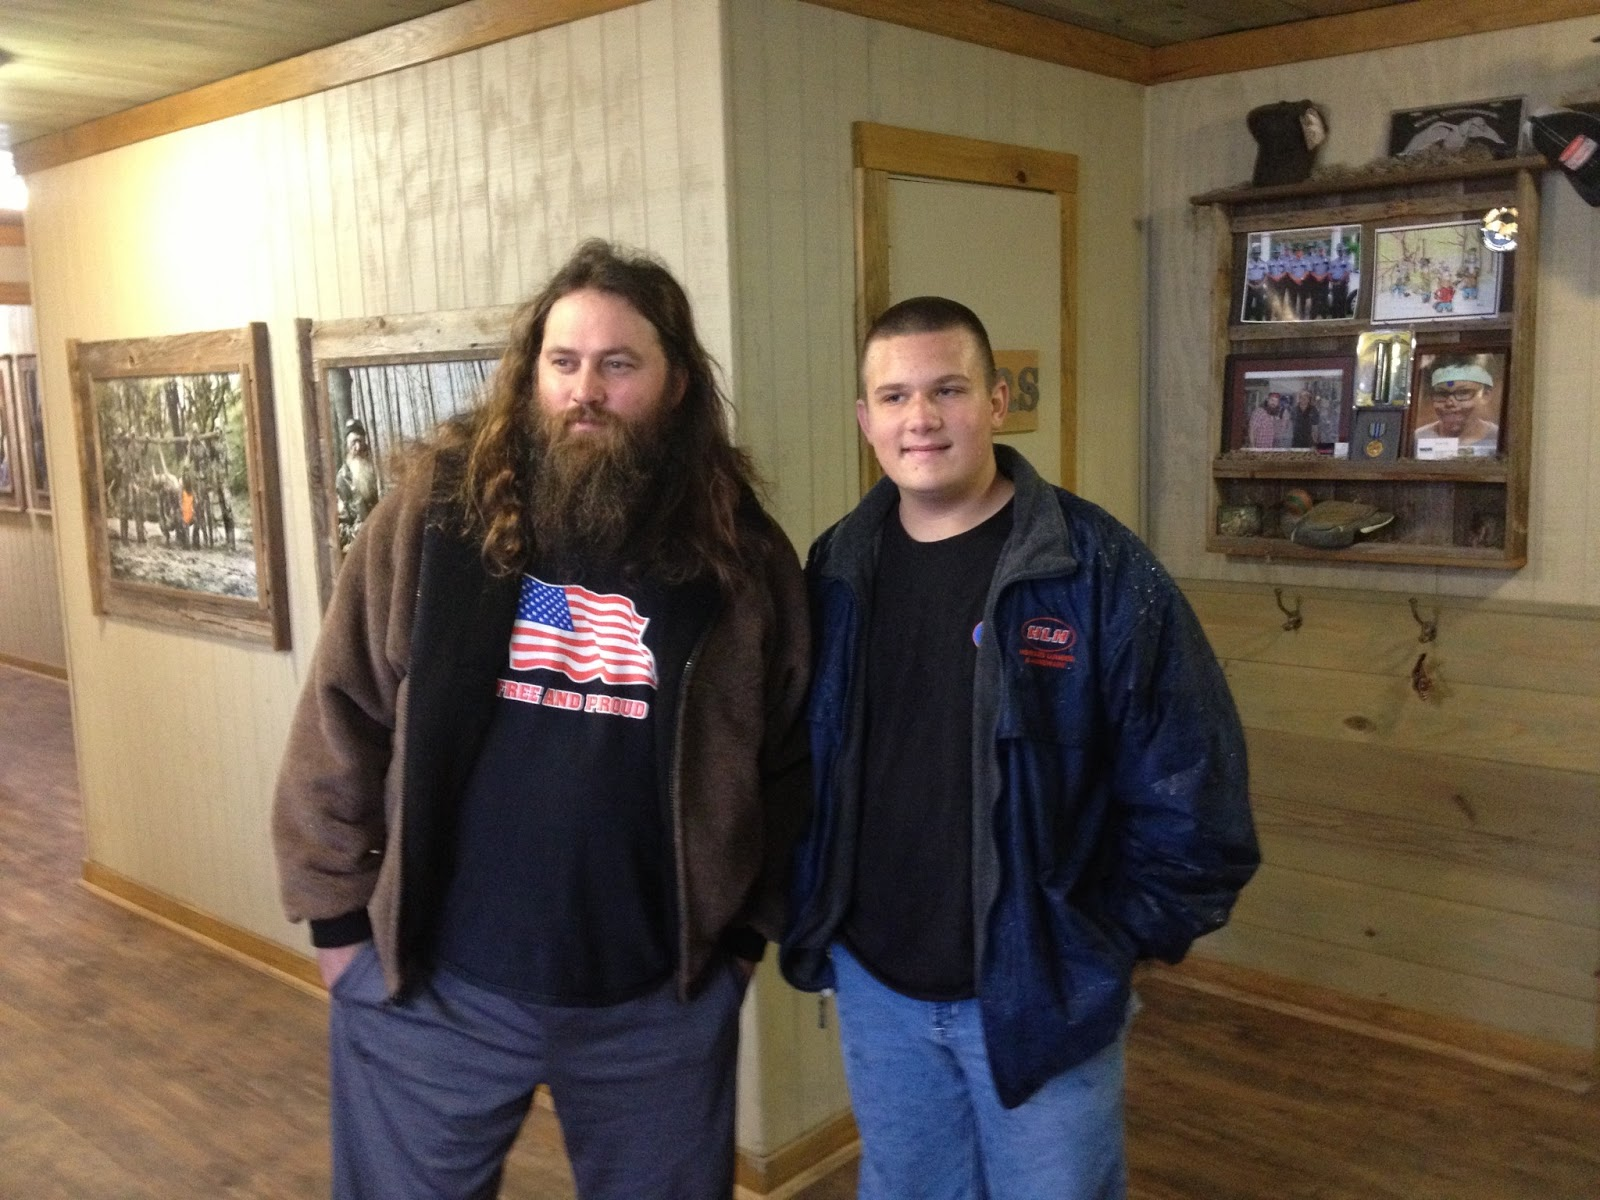 Willie Robertson and Joshua